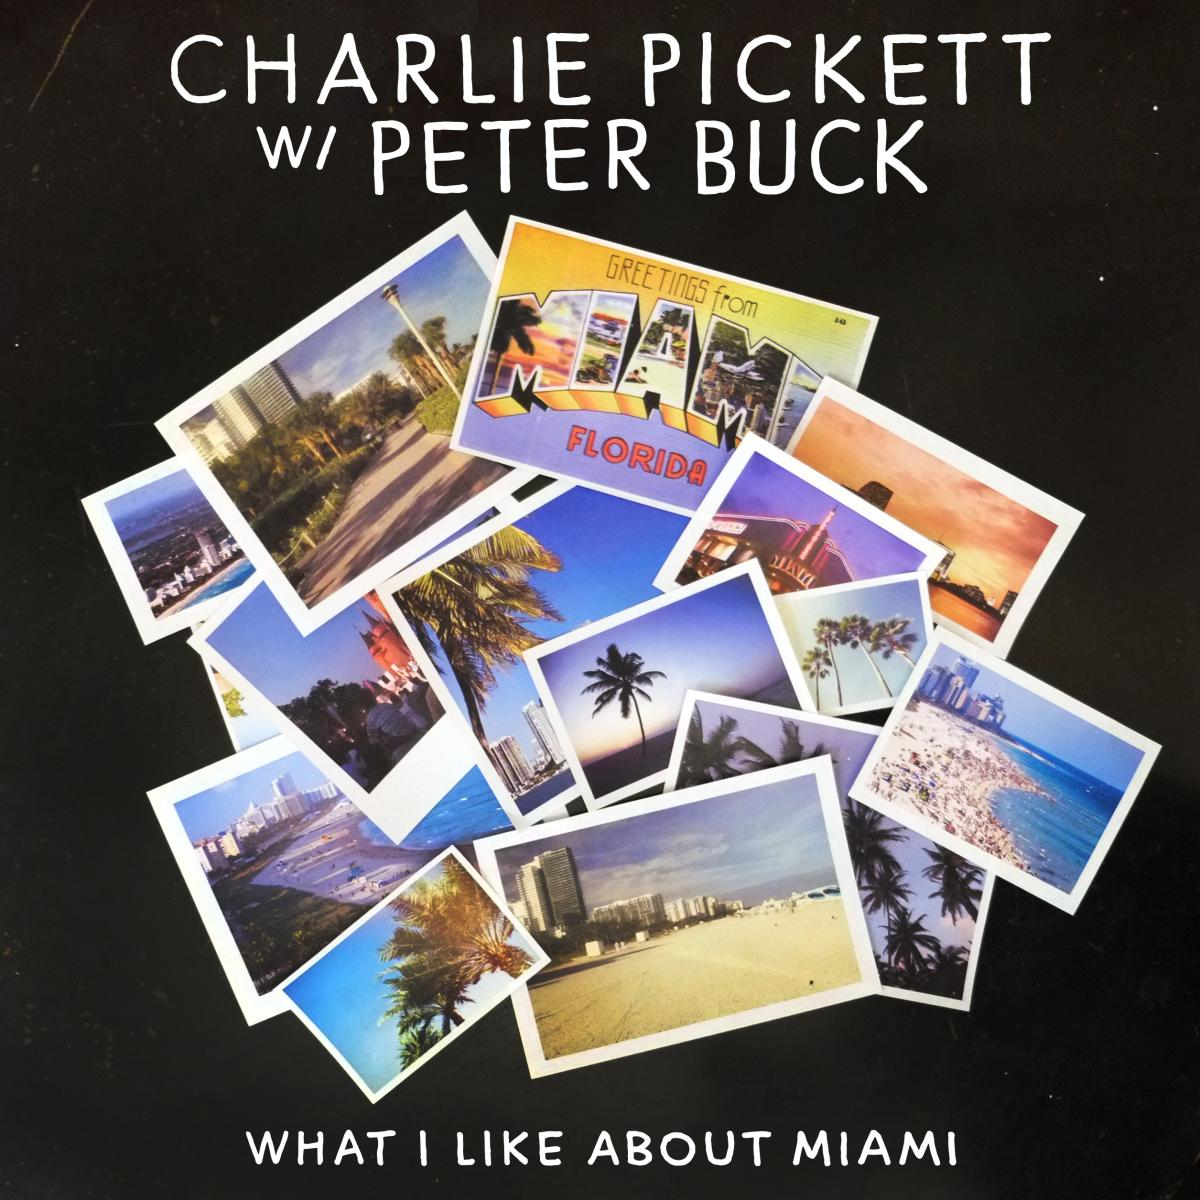 Charlie Pickett Peter Buck What I like About Miami